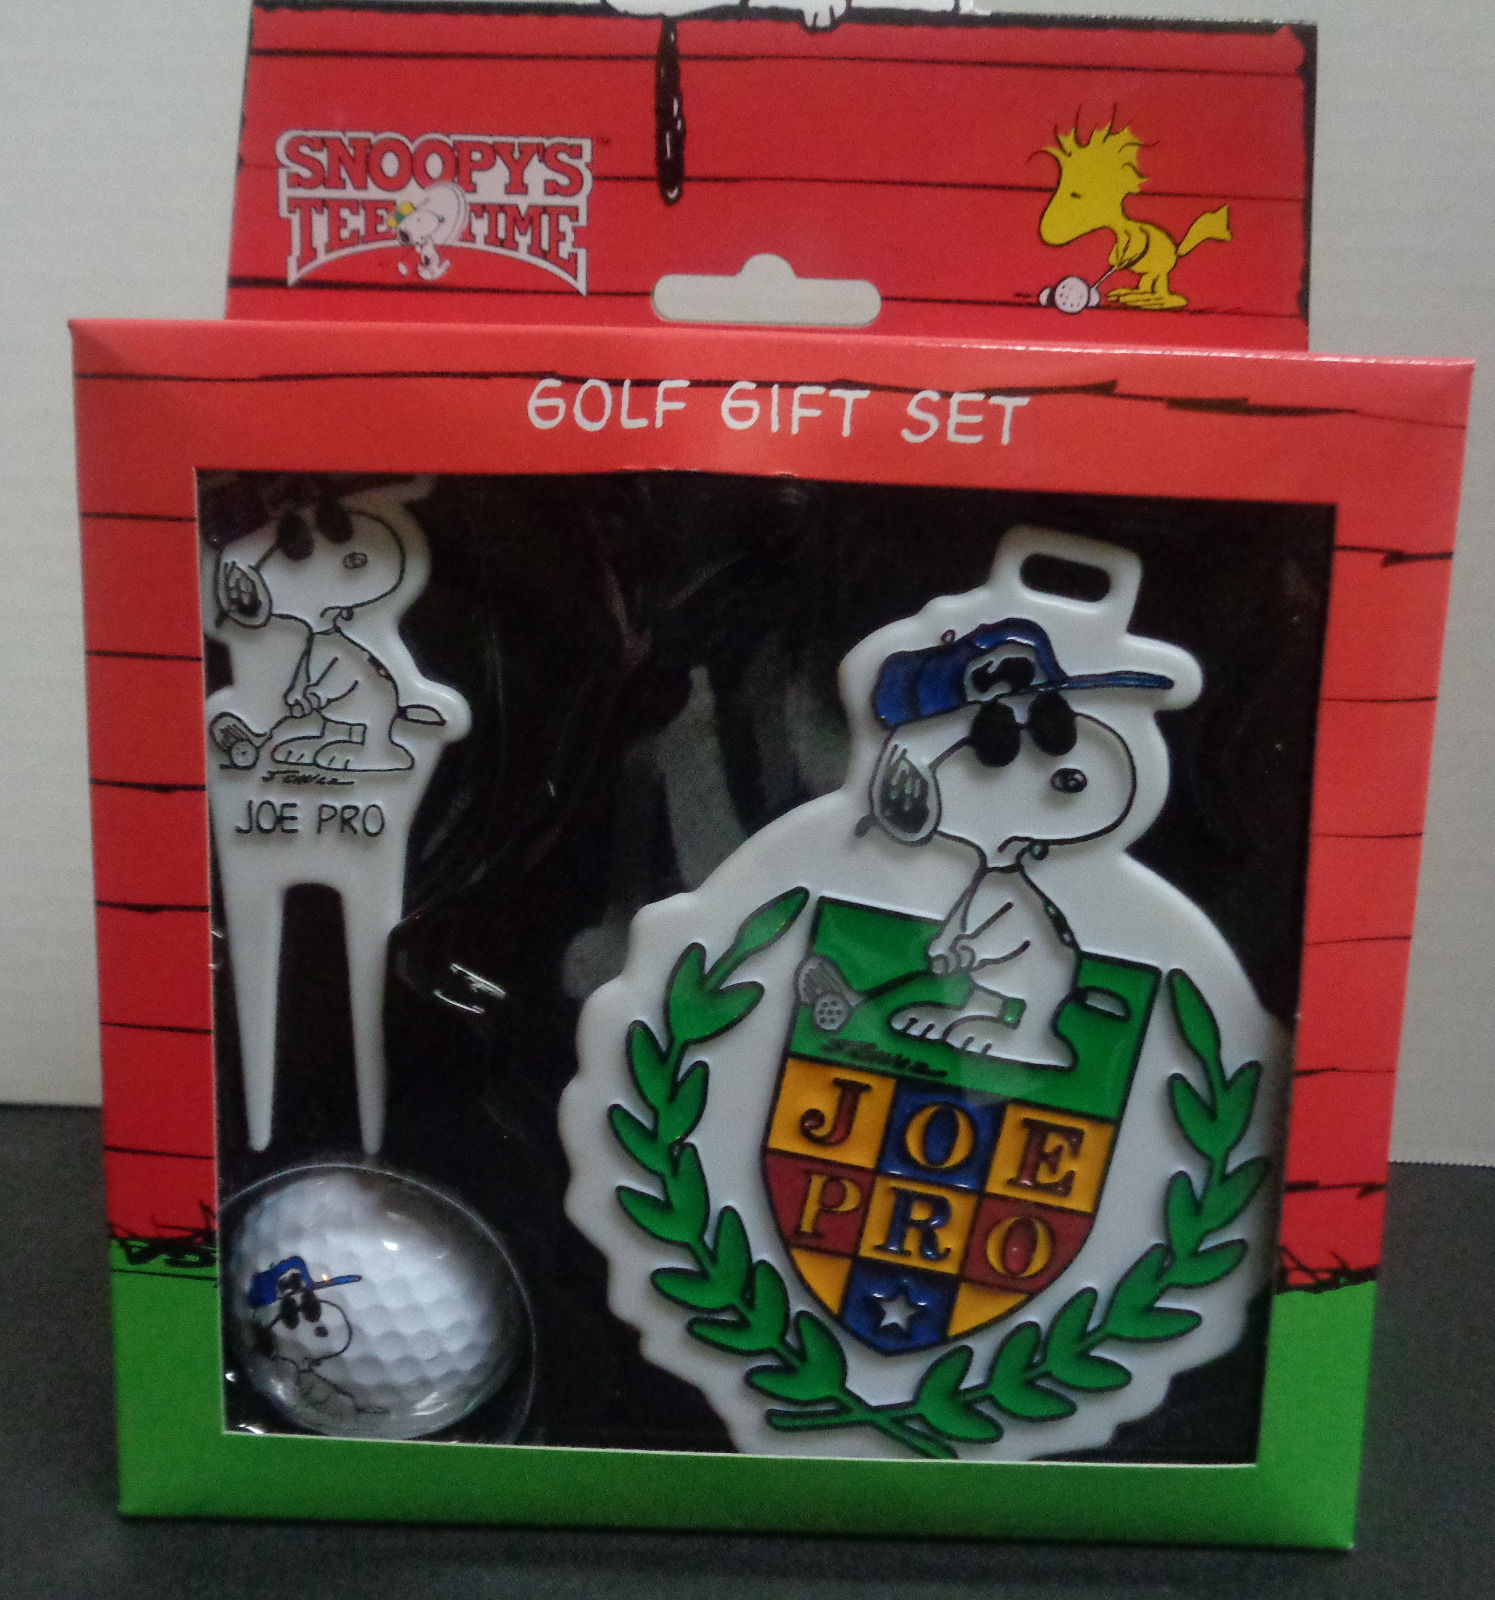 Peanuts Snoopy JOE PRO Golf Ball Bag Tag AND Divot Tool Gift Set NEW IN BOX